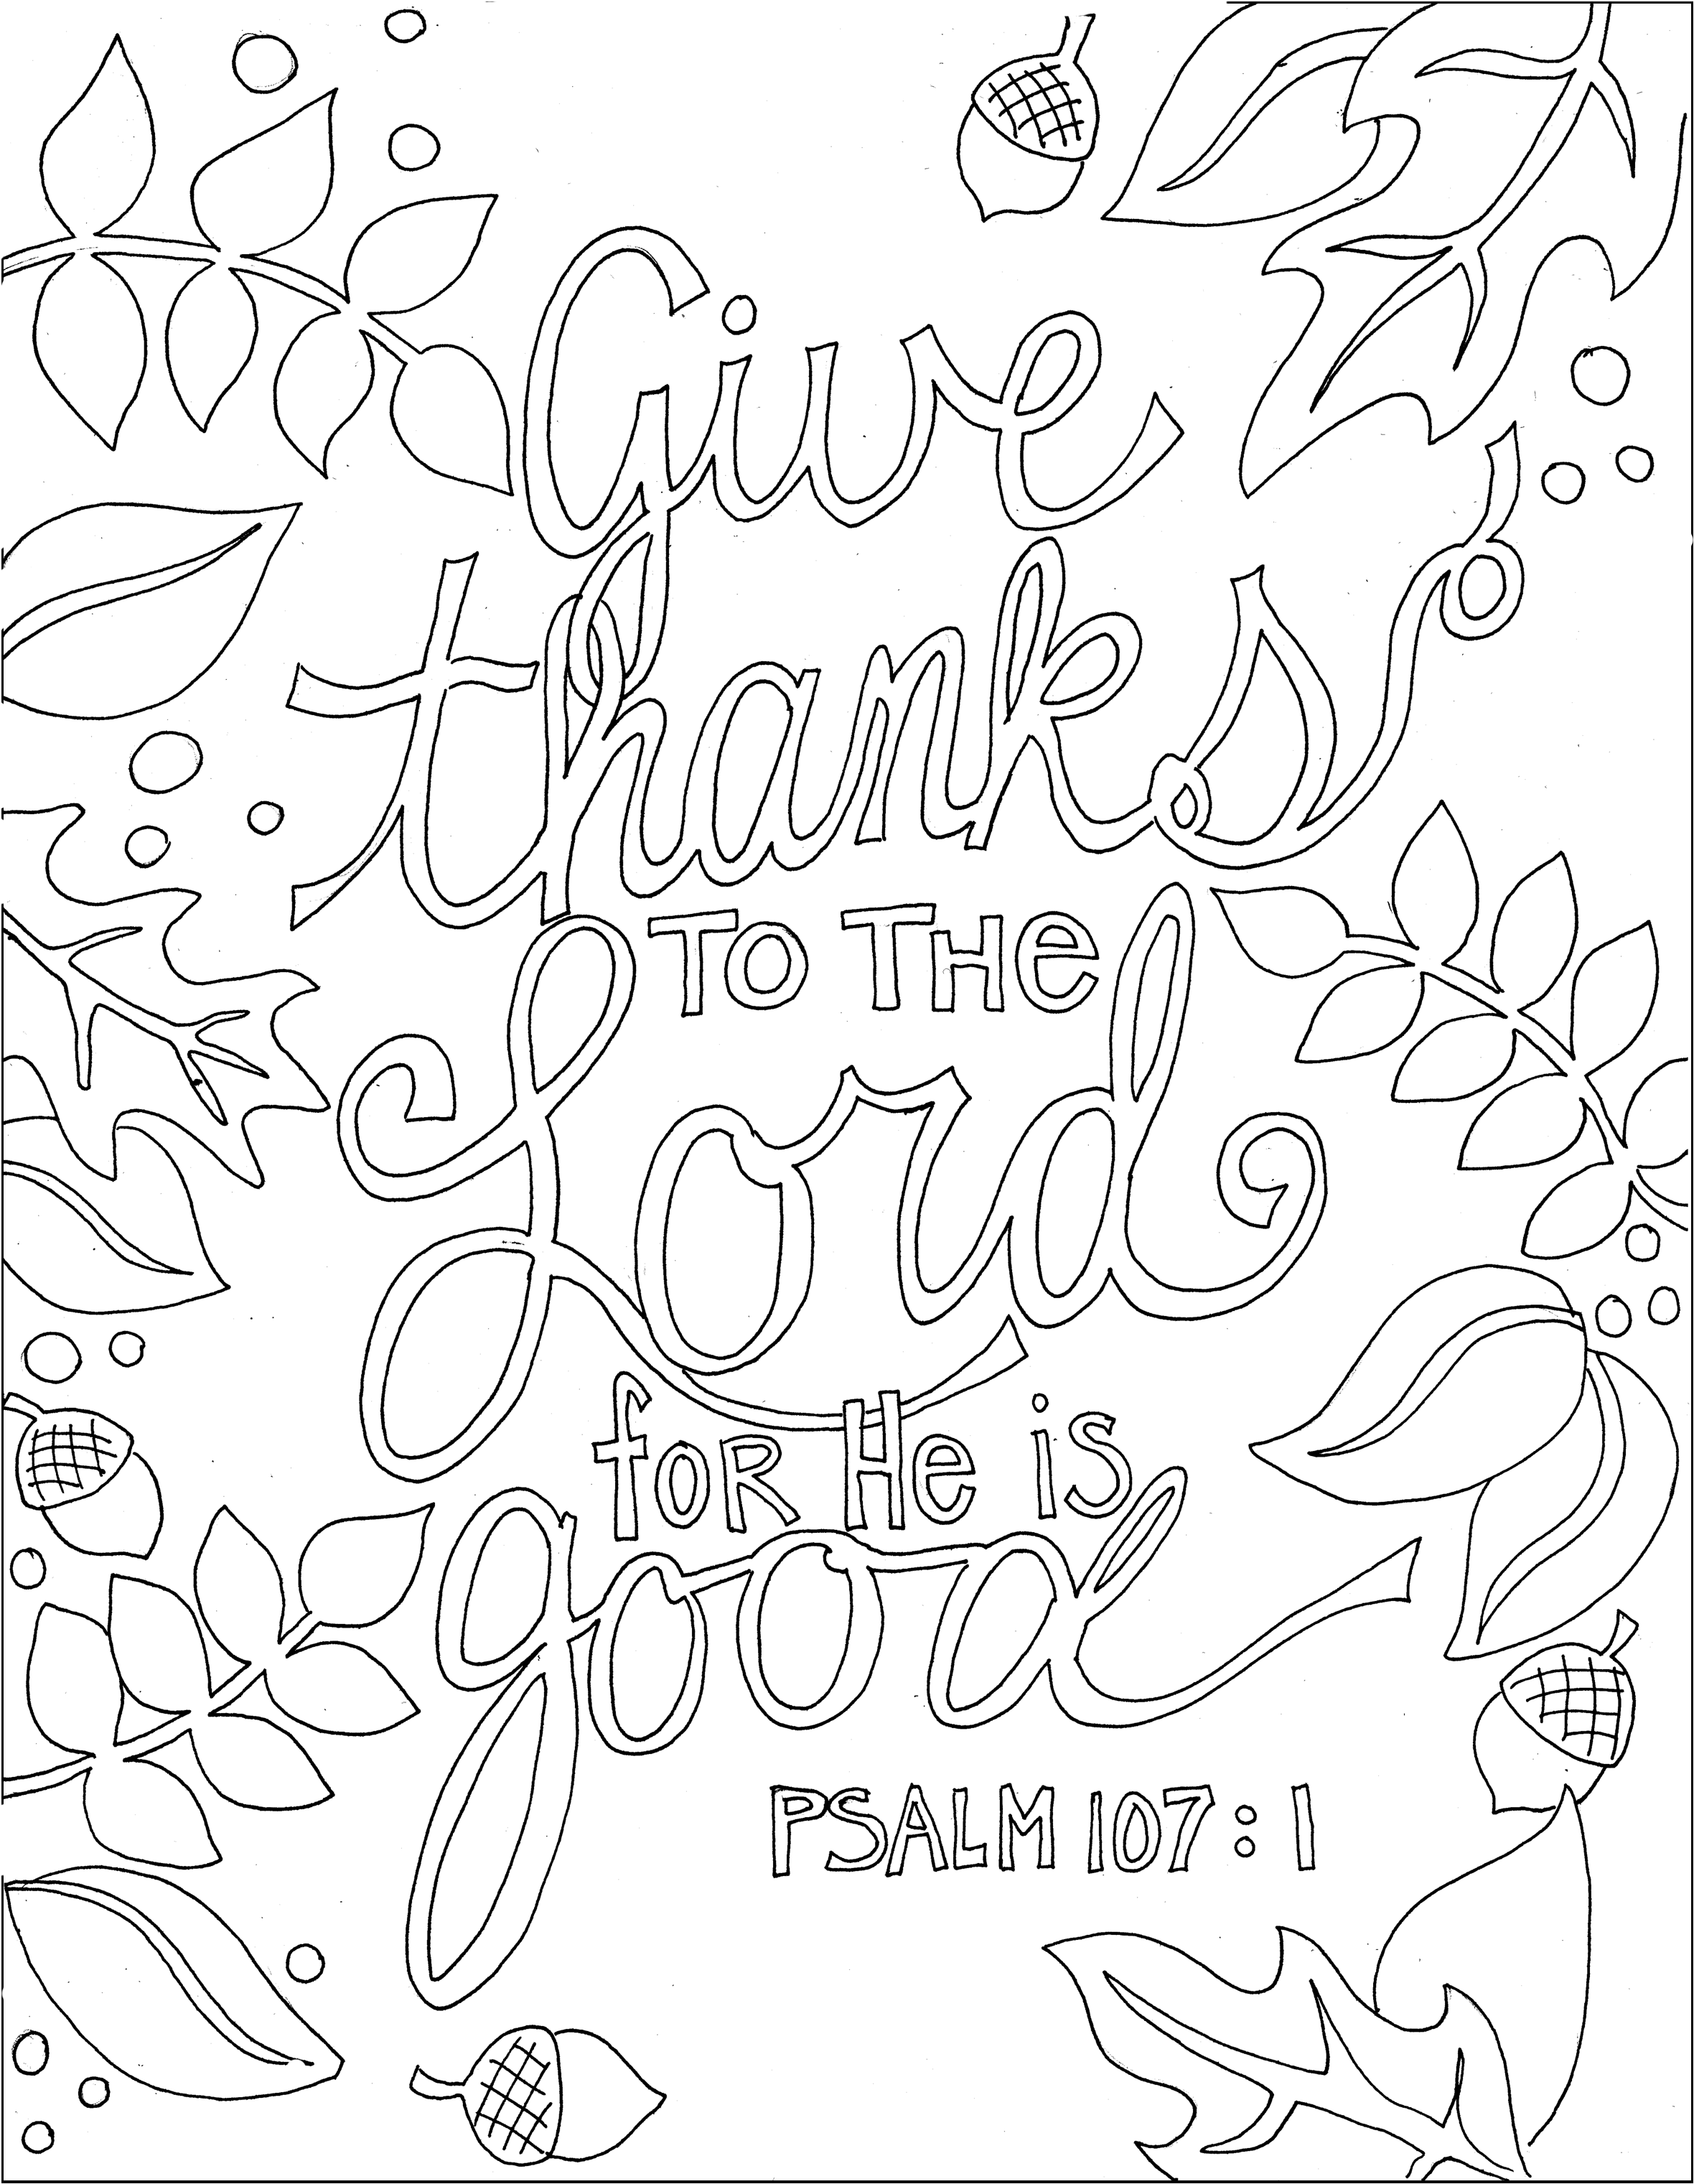 Bible Verse Coloring Page Coloring Pages For Kids And For Adults